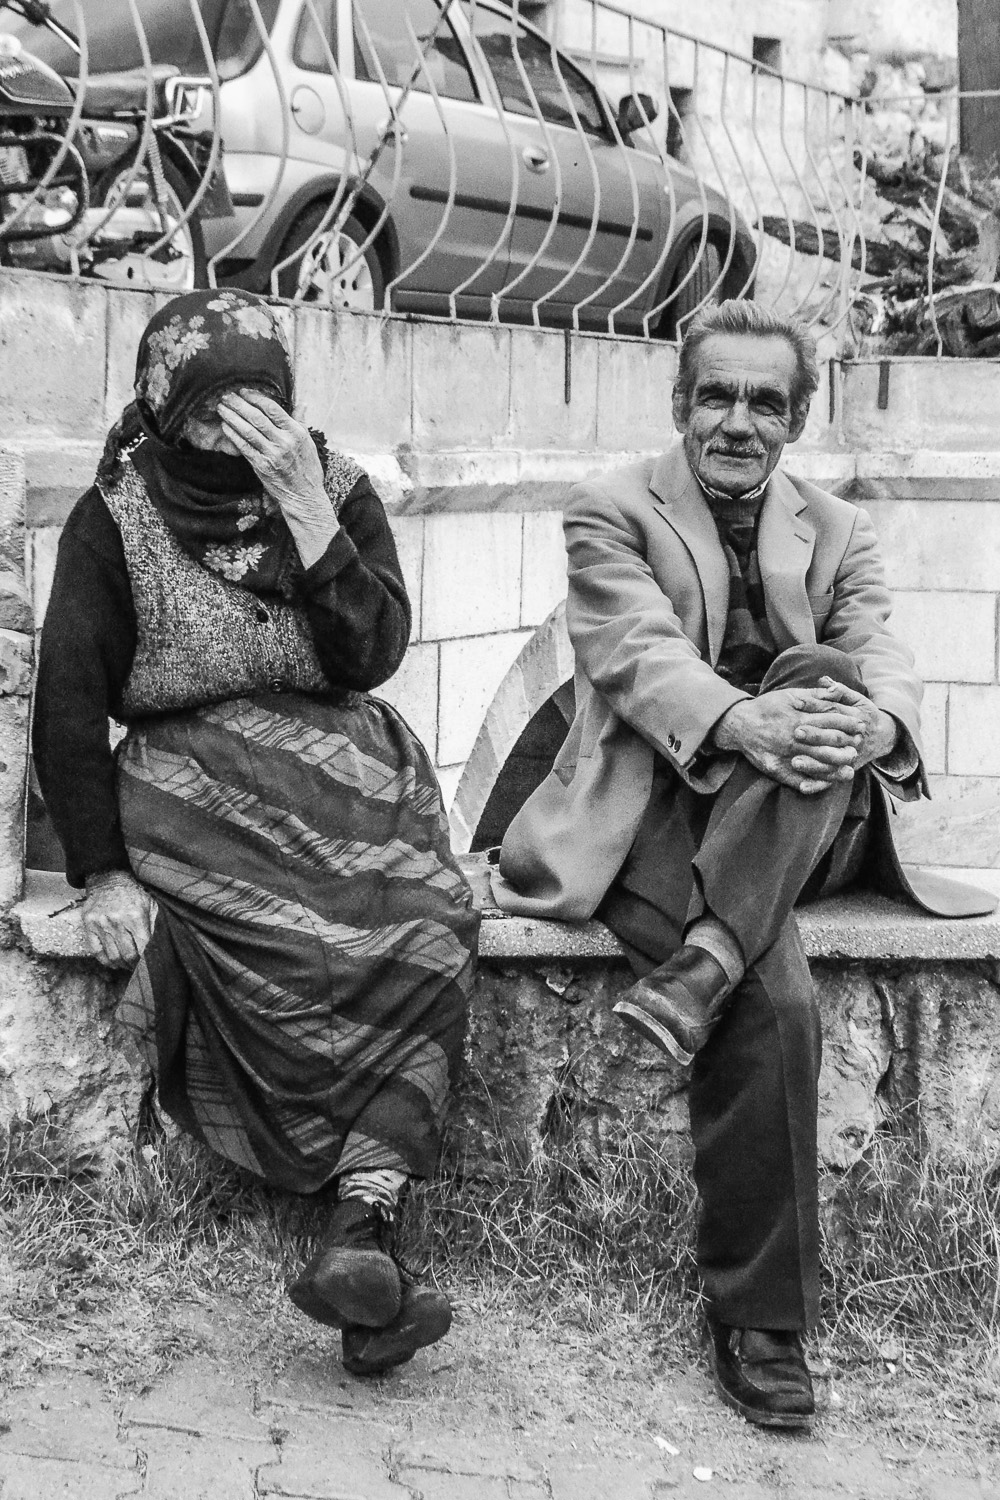 a woman and man sit in goreme, turkey. as seen here, some women believe that showing their face in a photo goes against religious beliefs